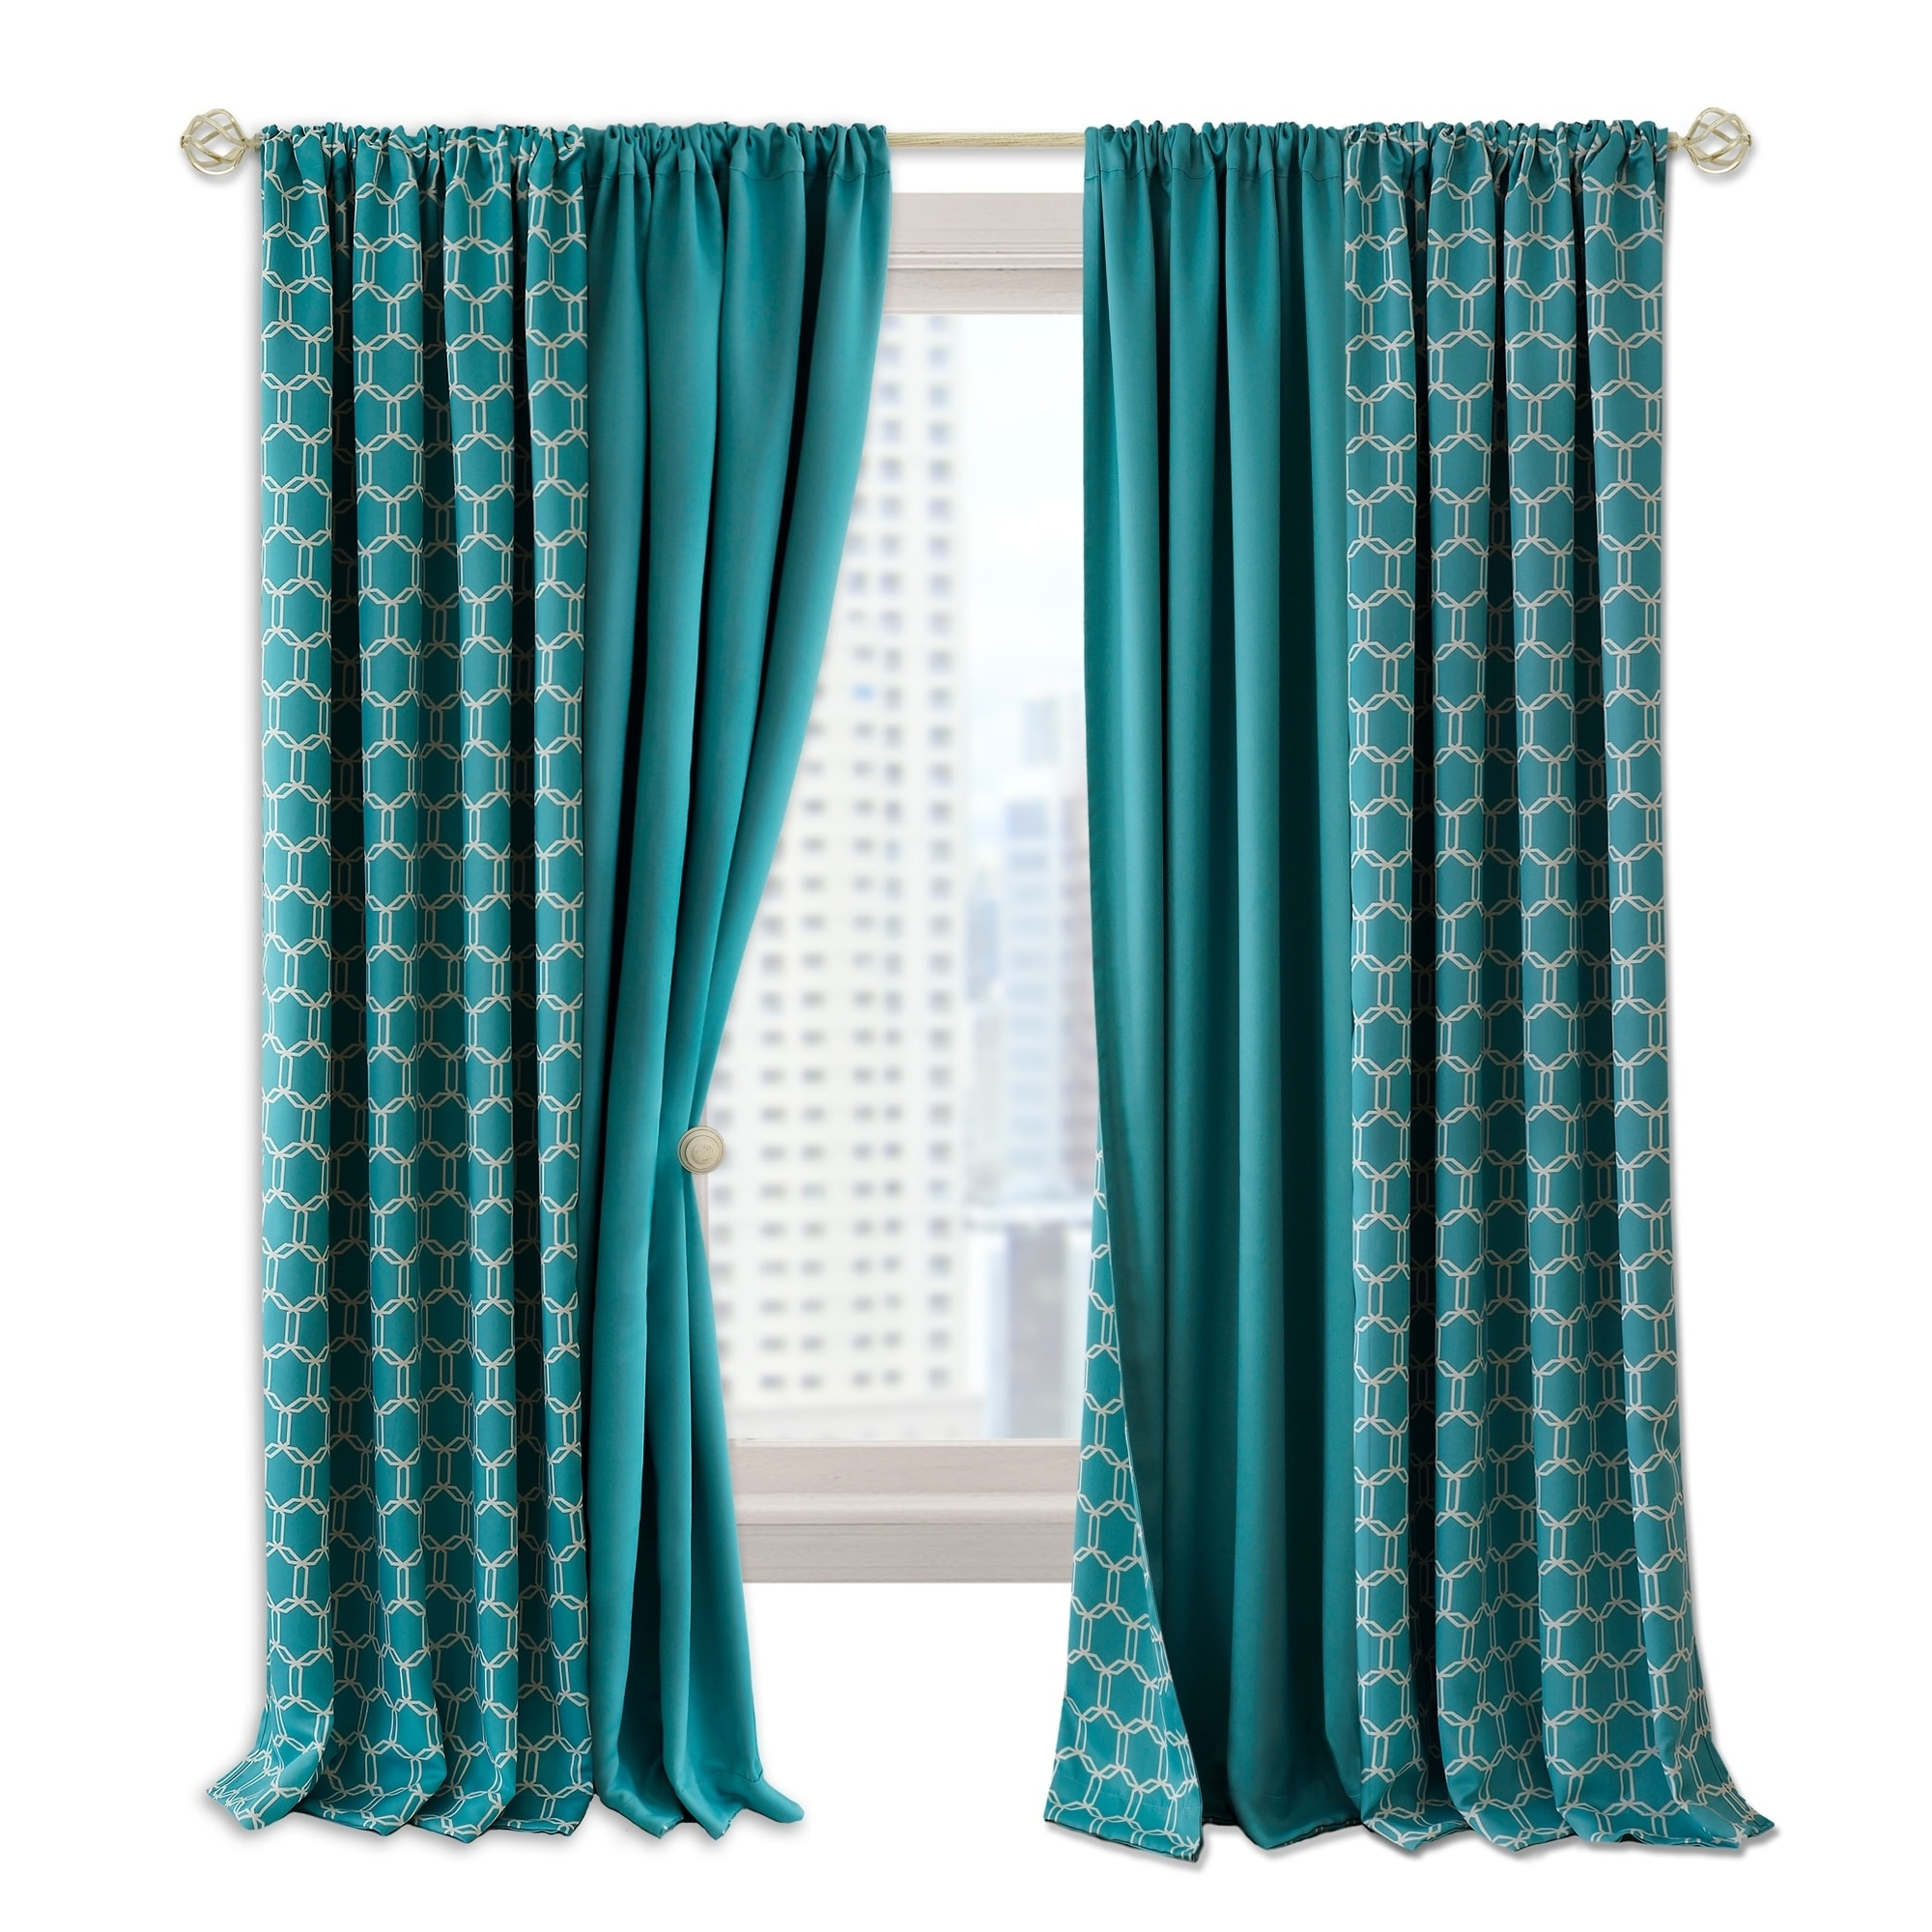 Prelude Reversible Blackout Rod Pocket Curtain Panel Overstock 20942645 50 W X 84 L Inches 84 Inches Black